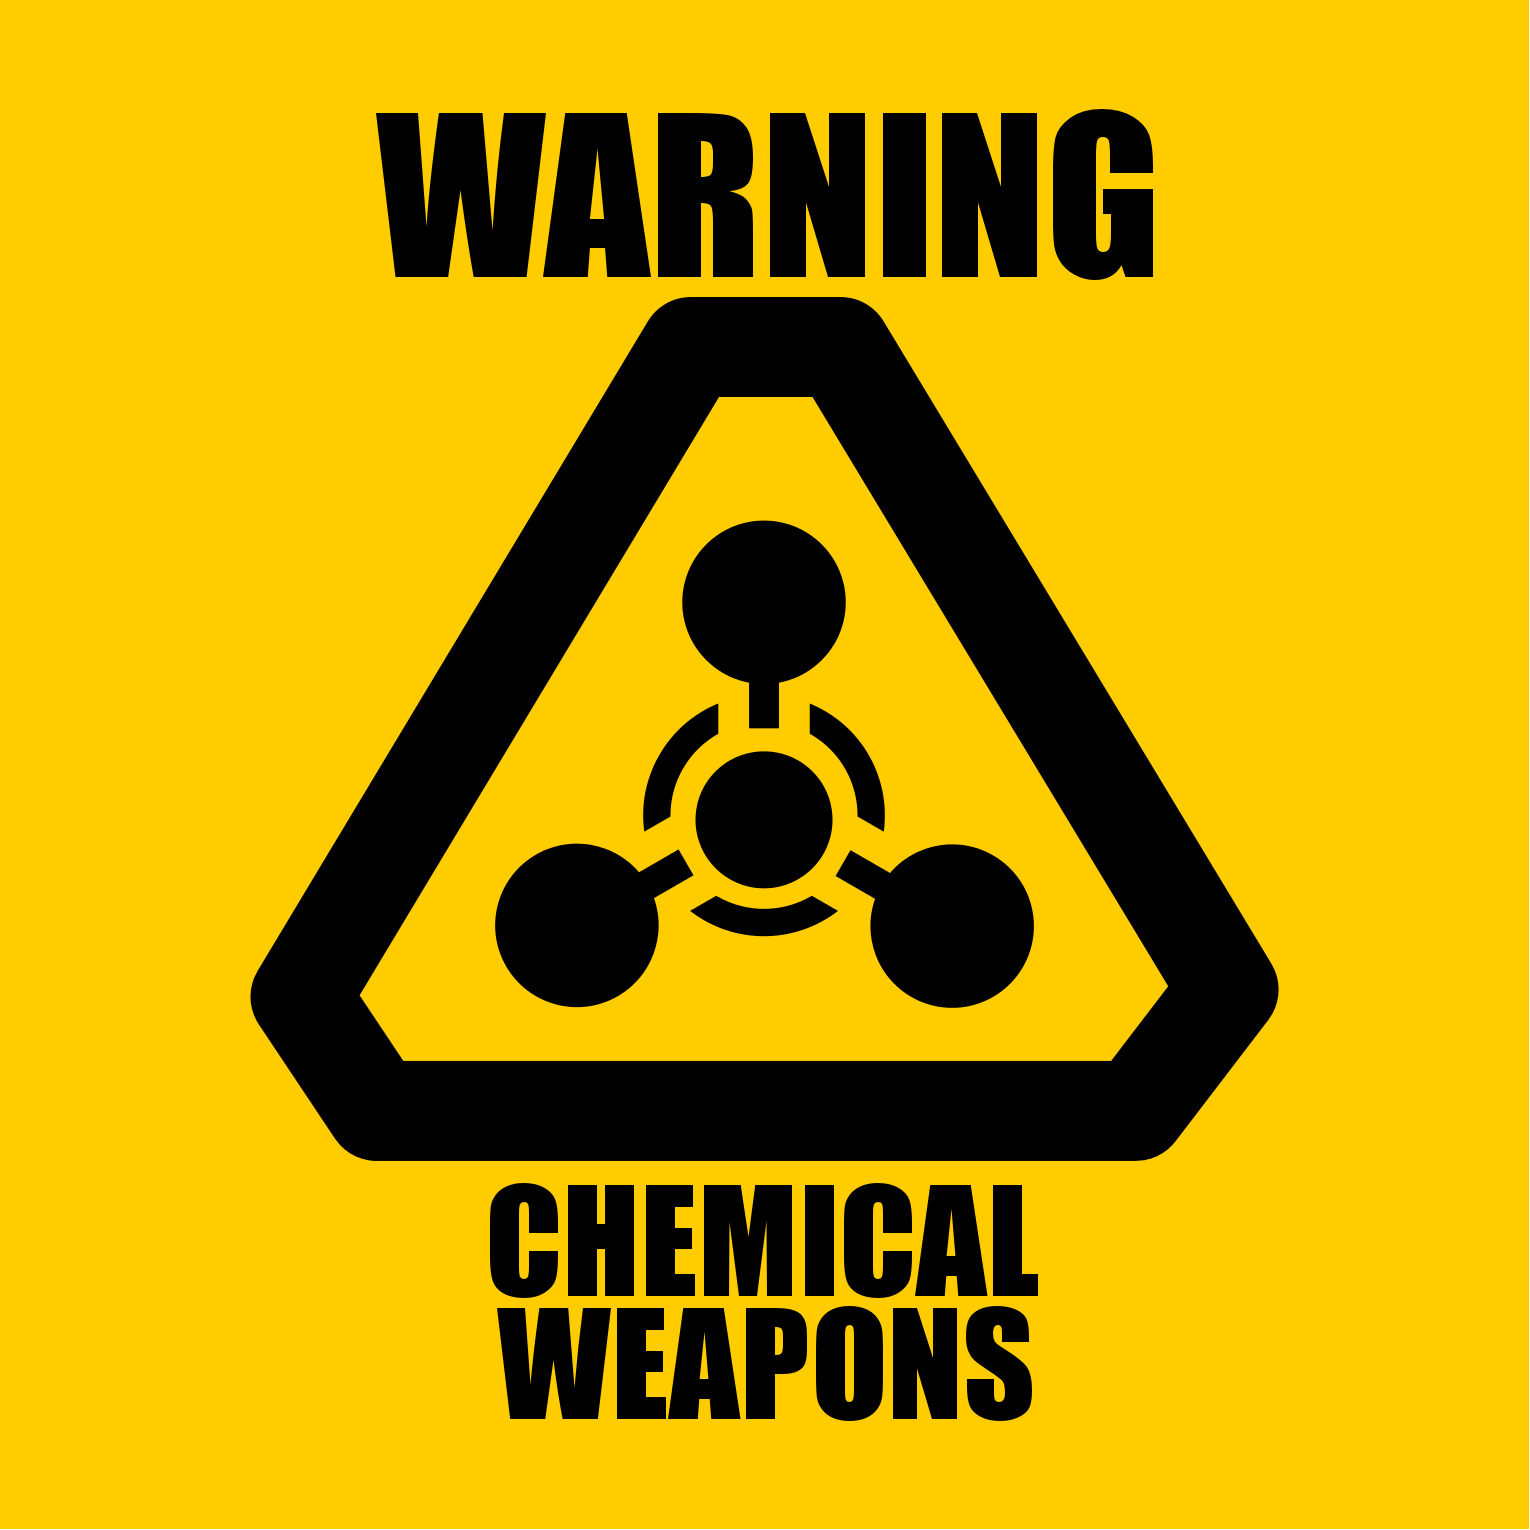 Warning: Chemical Weapons by AlienSquid on DeviantArt